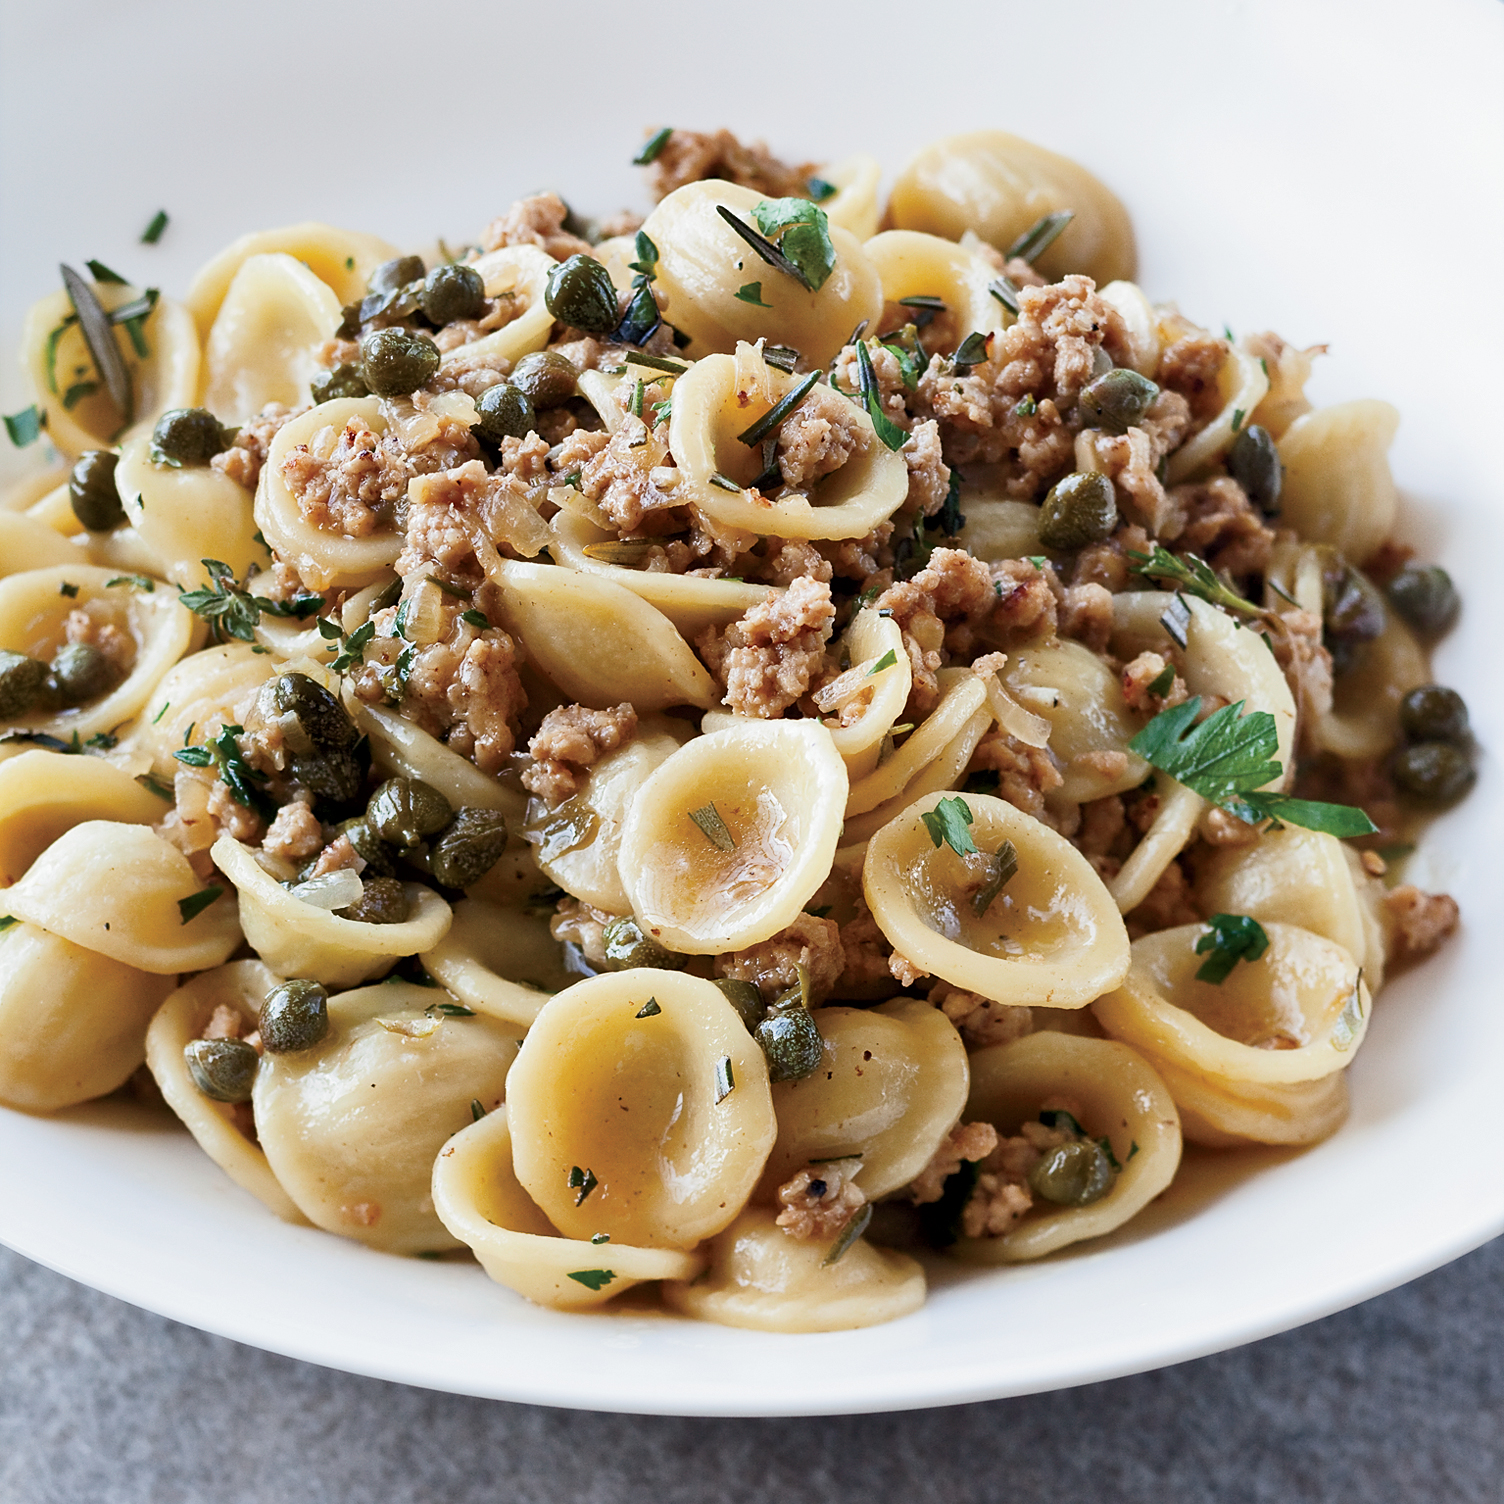 201001-r-orecchiette-veal-and-capers.jpg